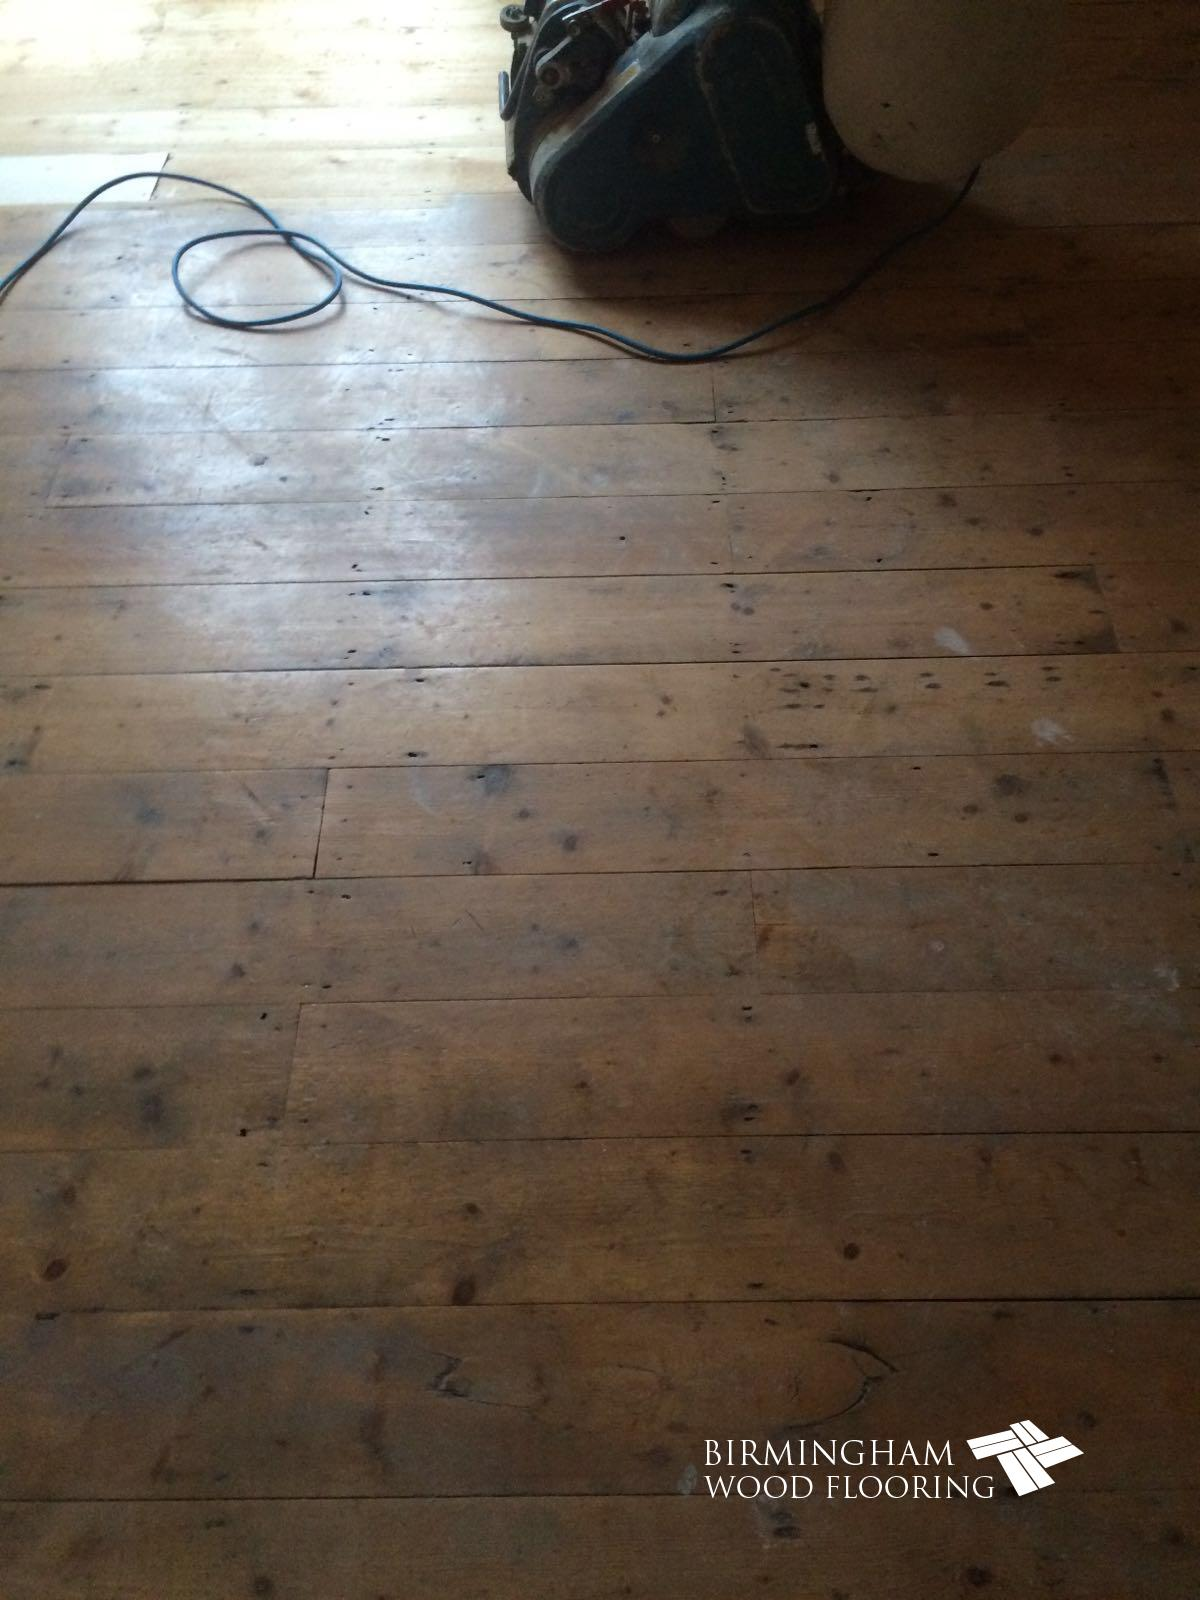 Wood-floor-before-being-sanded-2